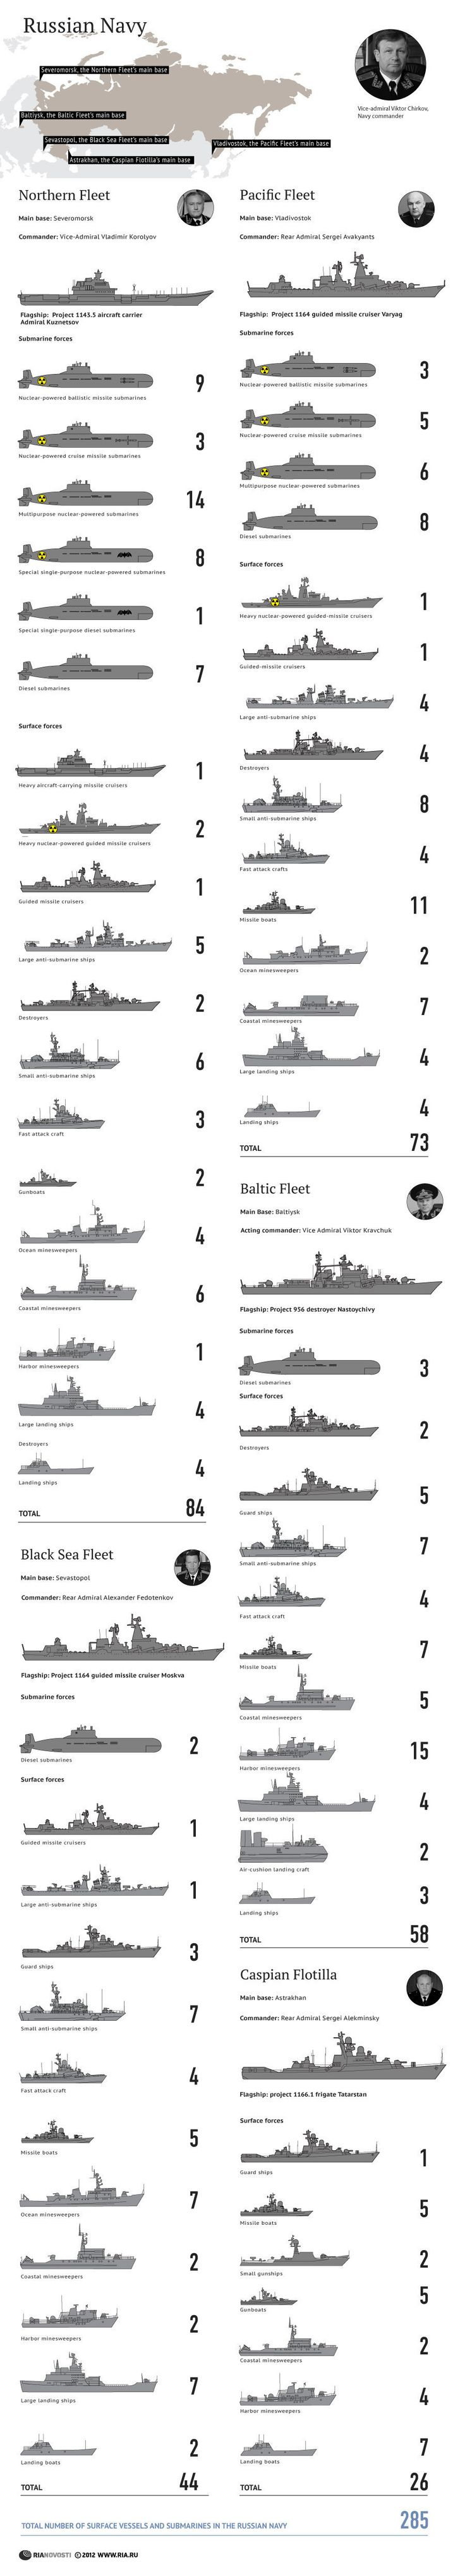 INFOGRAPHIC: Russian Navy